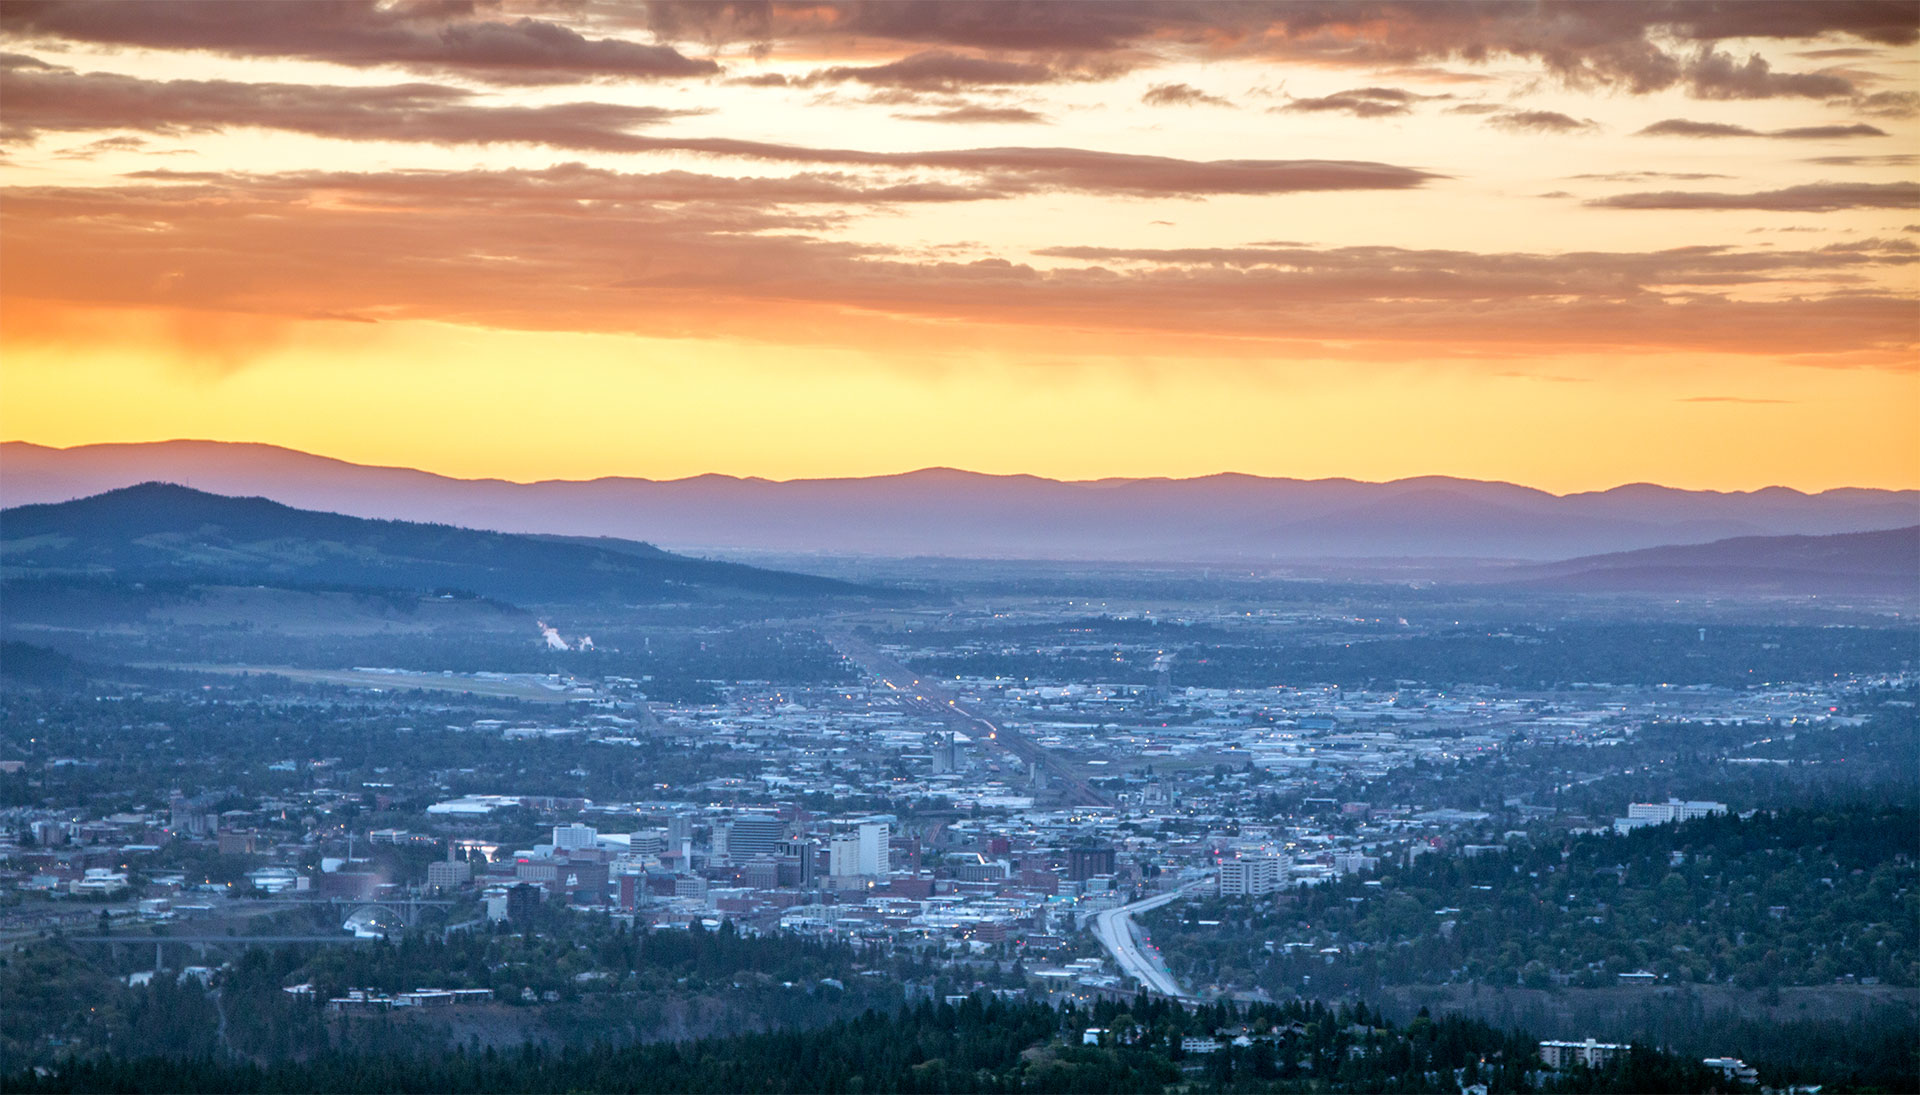 Sunrise looking East over Downtown Spokane from a Helicopter